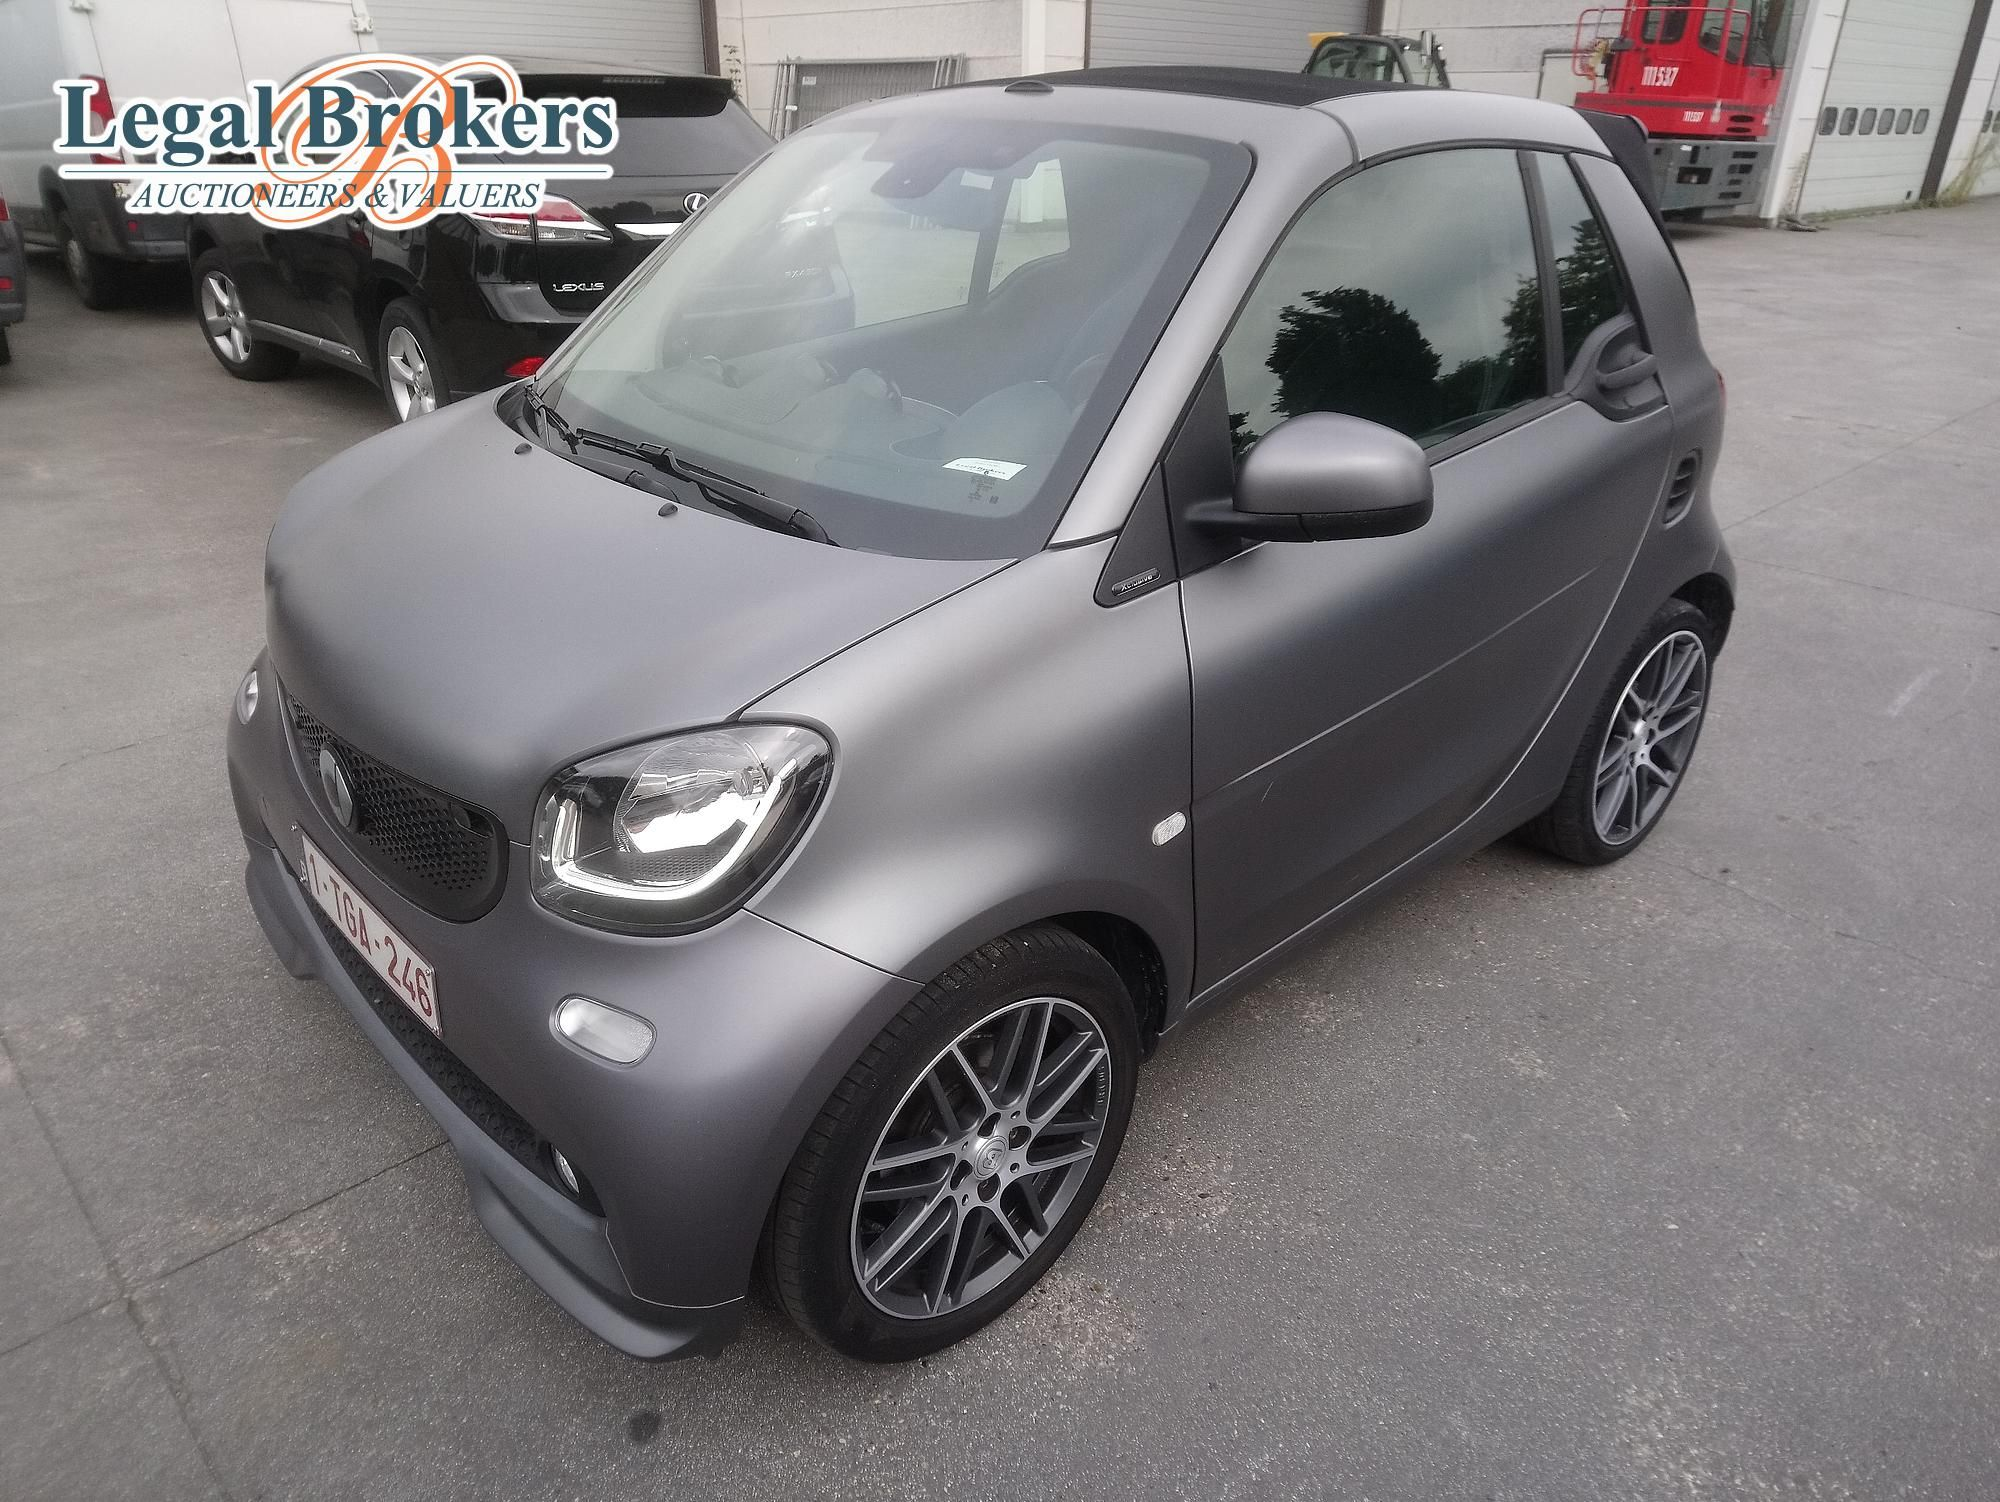 Smart fortwo Brabus 0.9 Turbo - Cabriolet